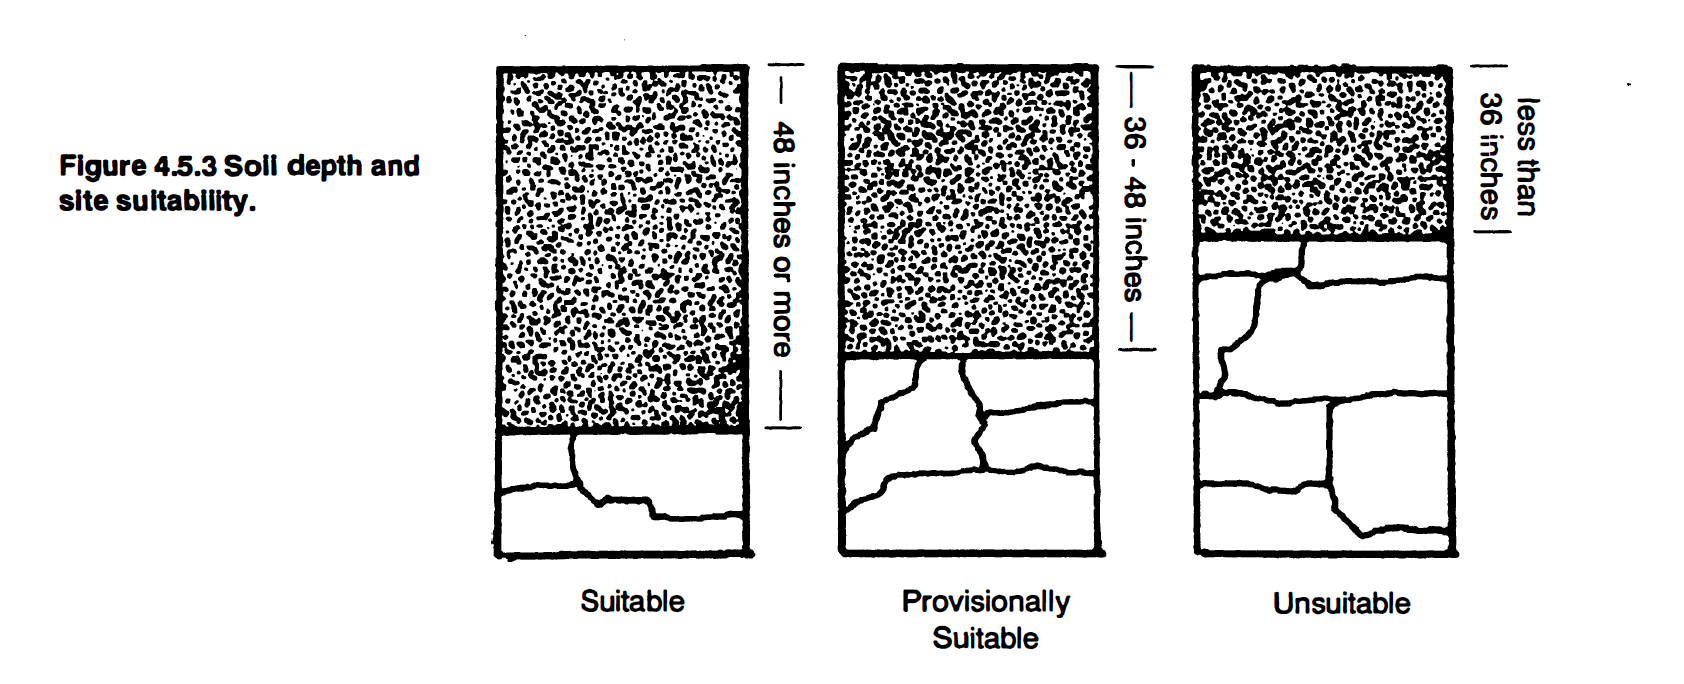 Soil Depths and Site Suitability for Septic Systems